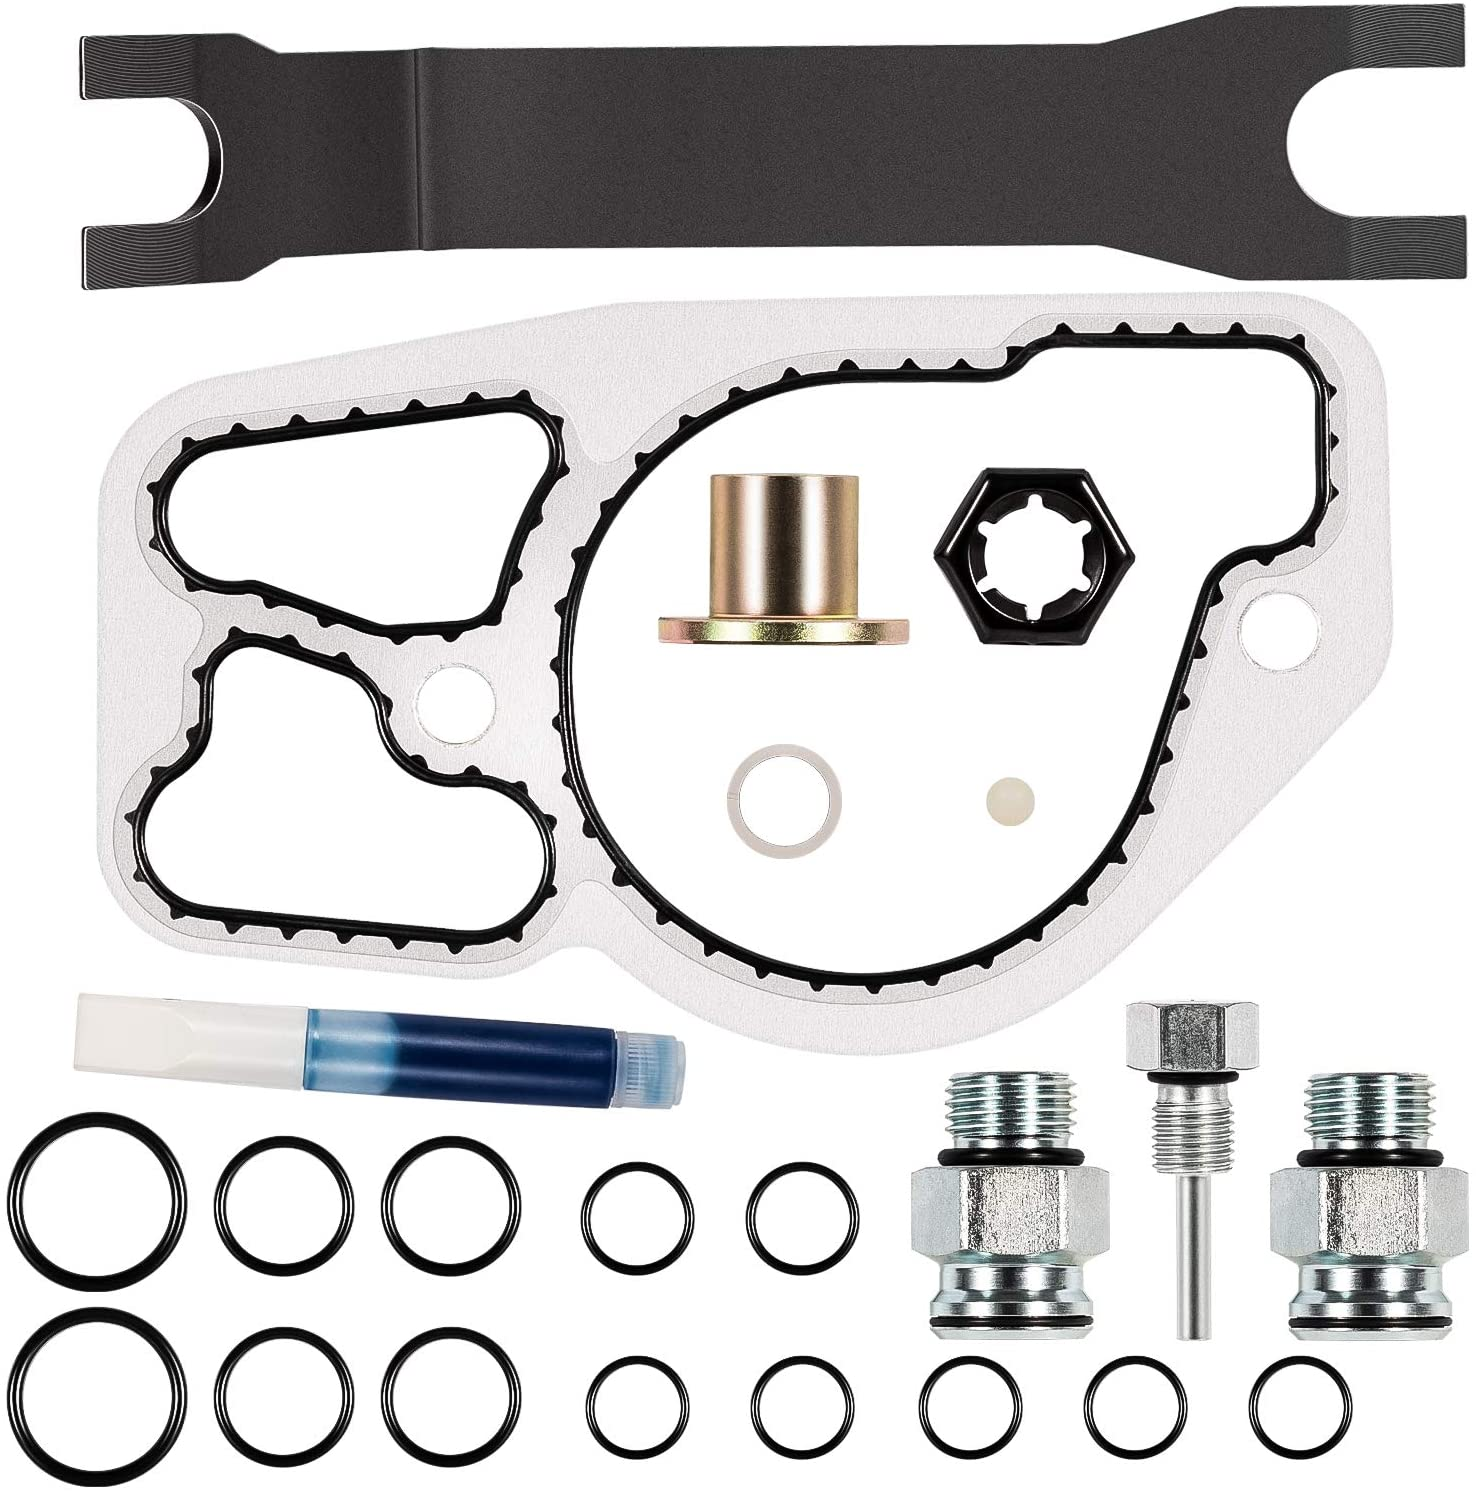 High Pressure Oil Pump Master Service Kit with O-Ring Seal Kit & Base Gasket fit for Ford Powerstroke 7.3L Diesel 1994-2003